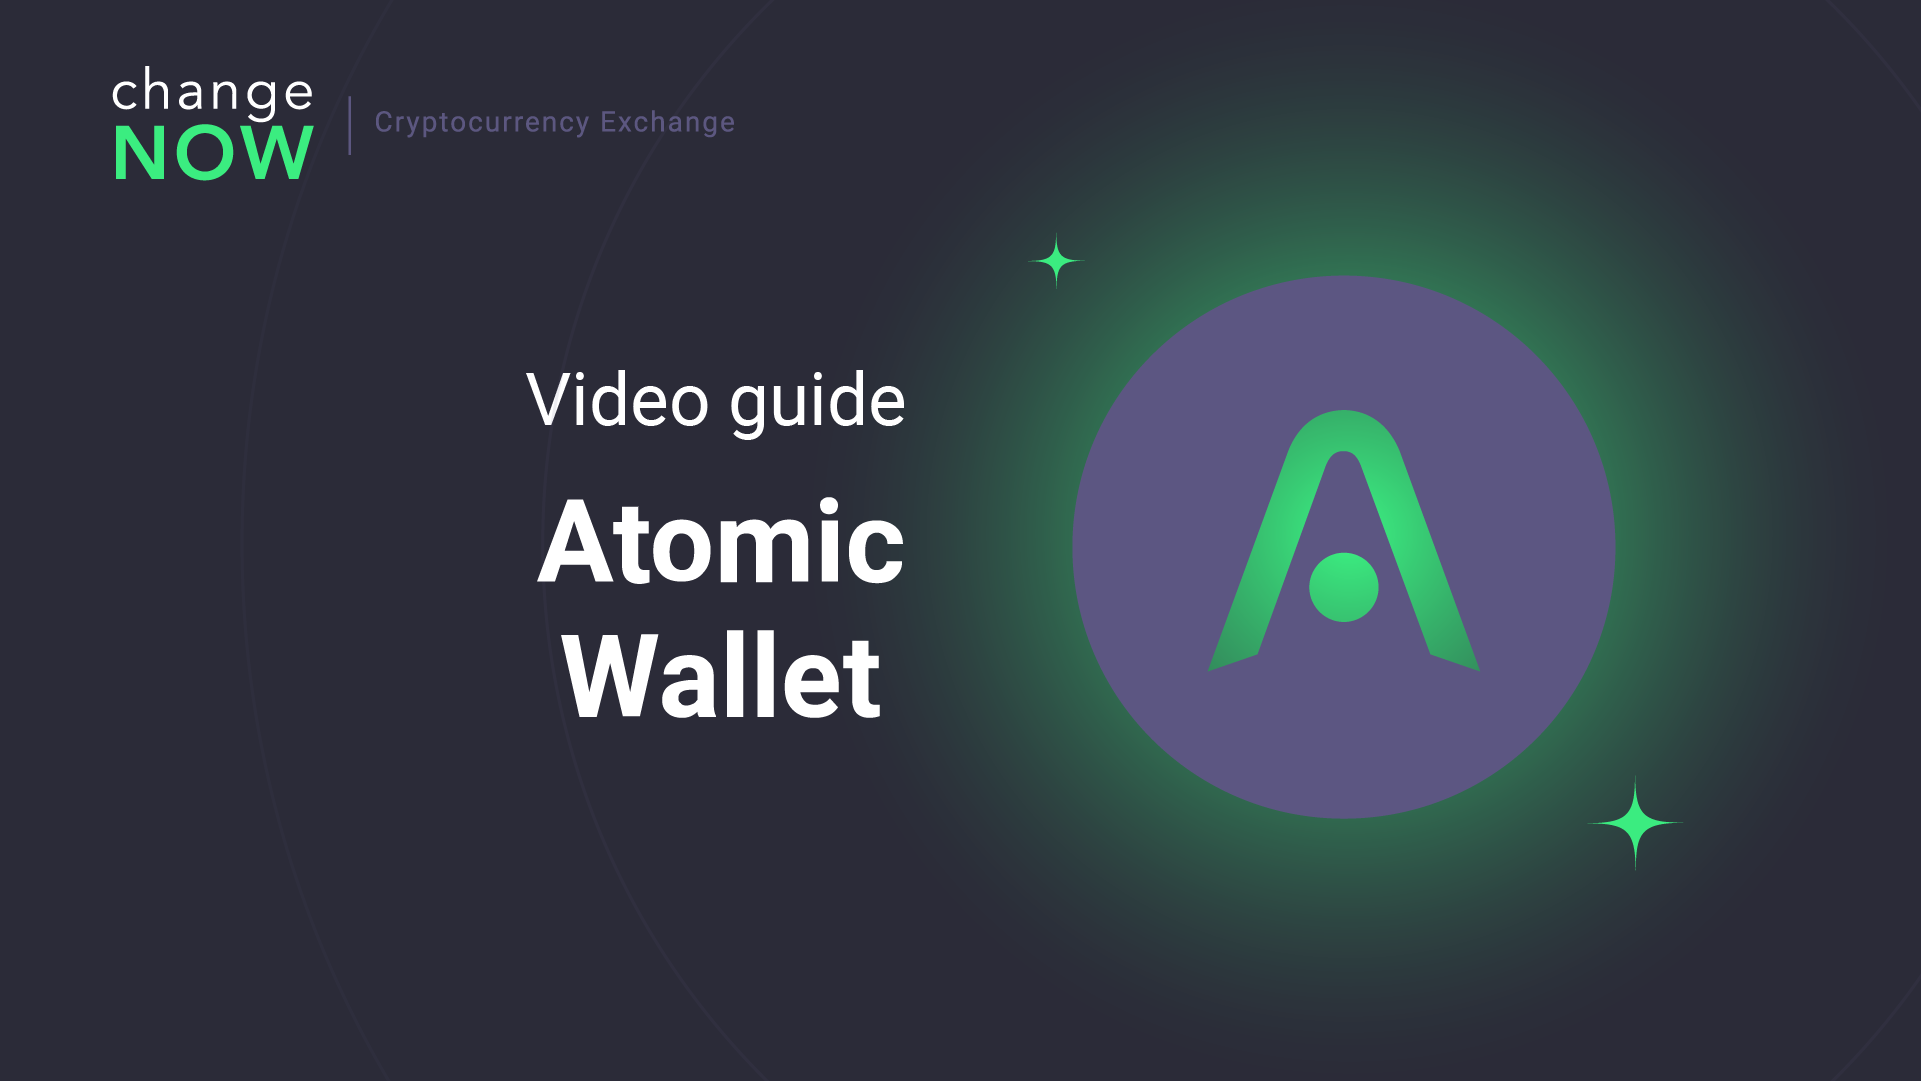 How To Perform A ChangeNOW Exchange In Atomic Wallet [GUIDE]